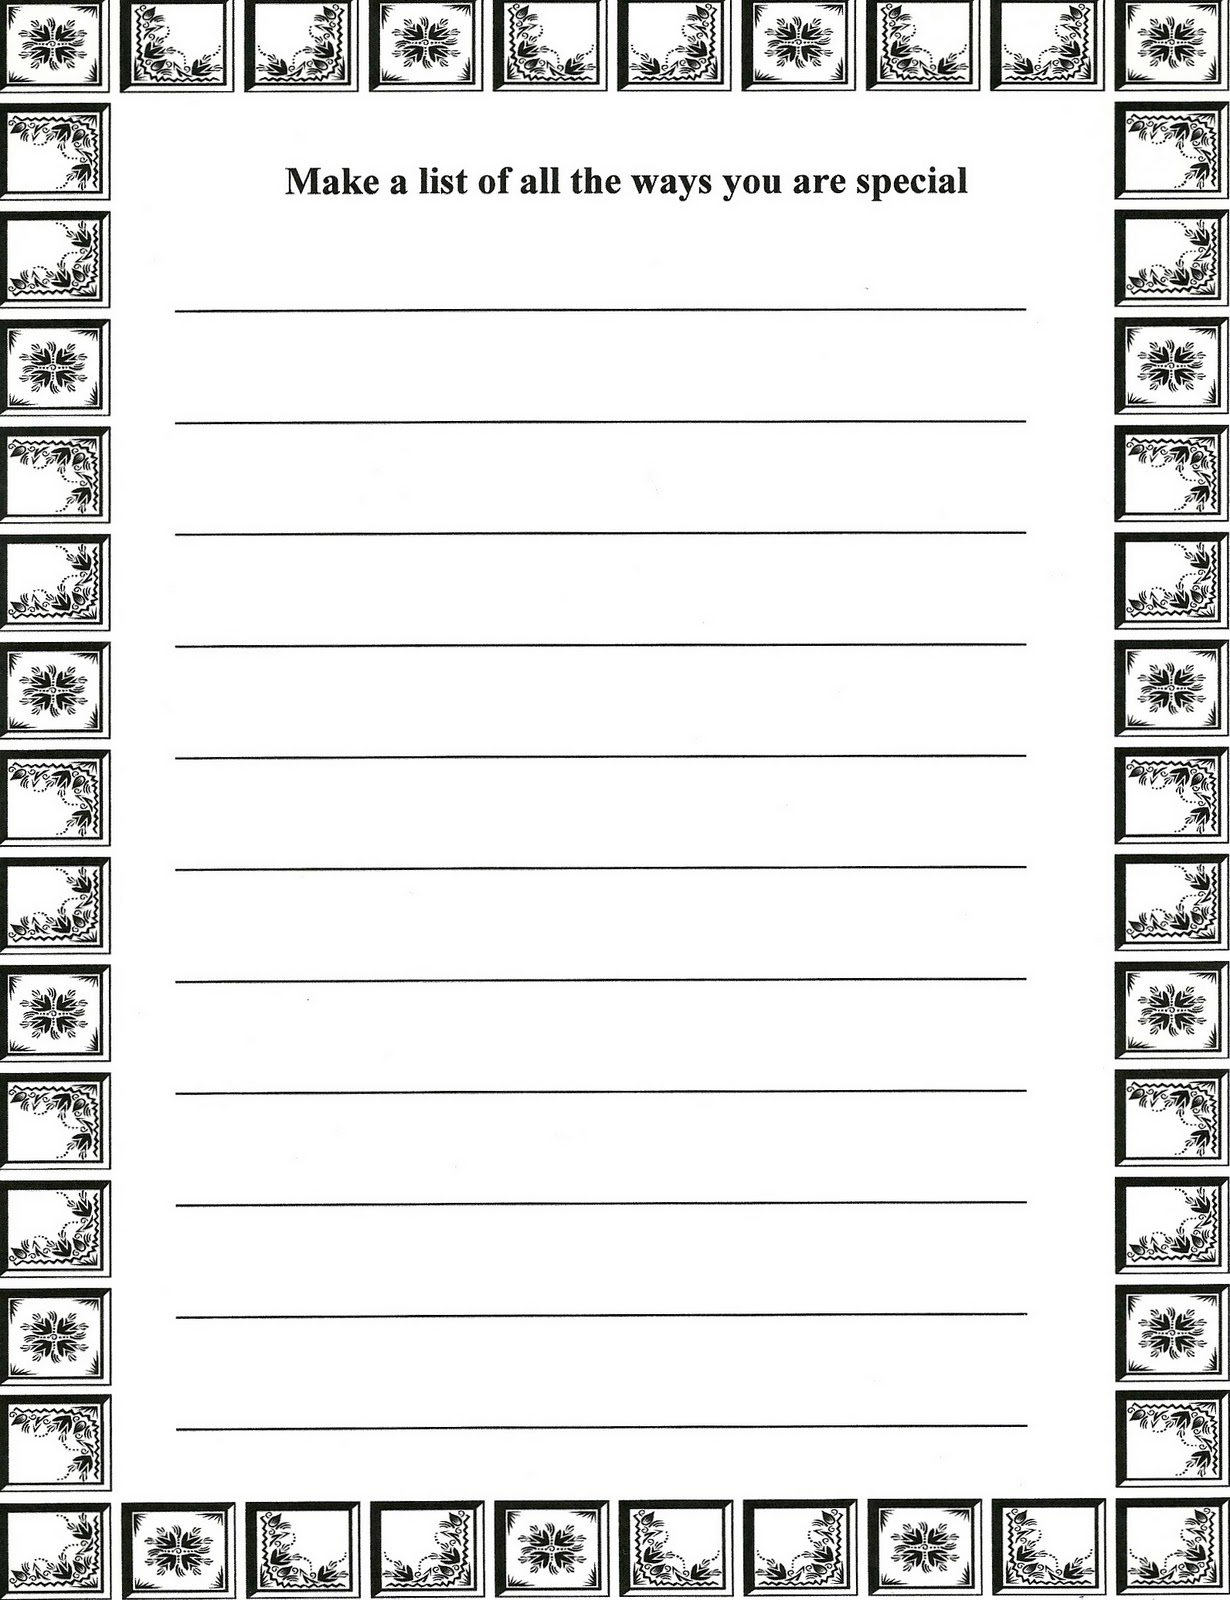 Bullying Worksheets For Preschoolers